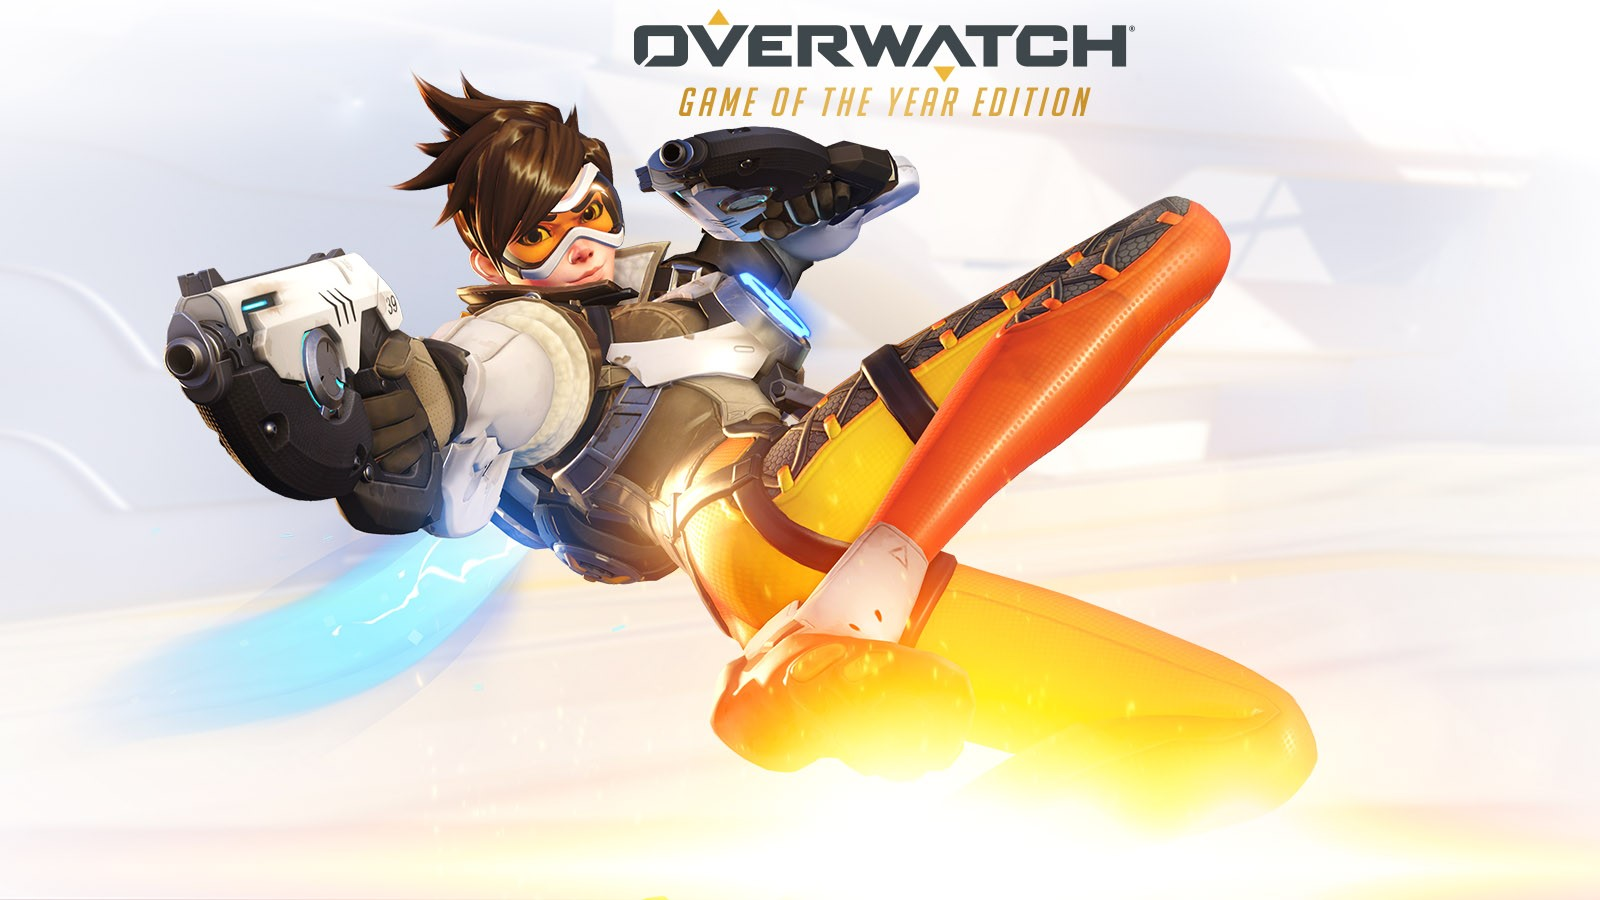 Overwatch: GAME OF THE YEAR Edition GOTY PHOTO key